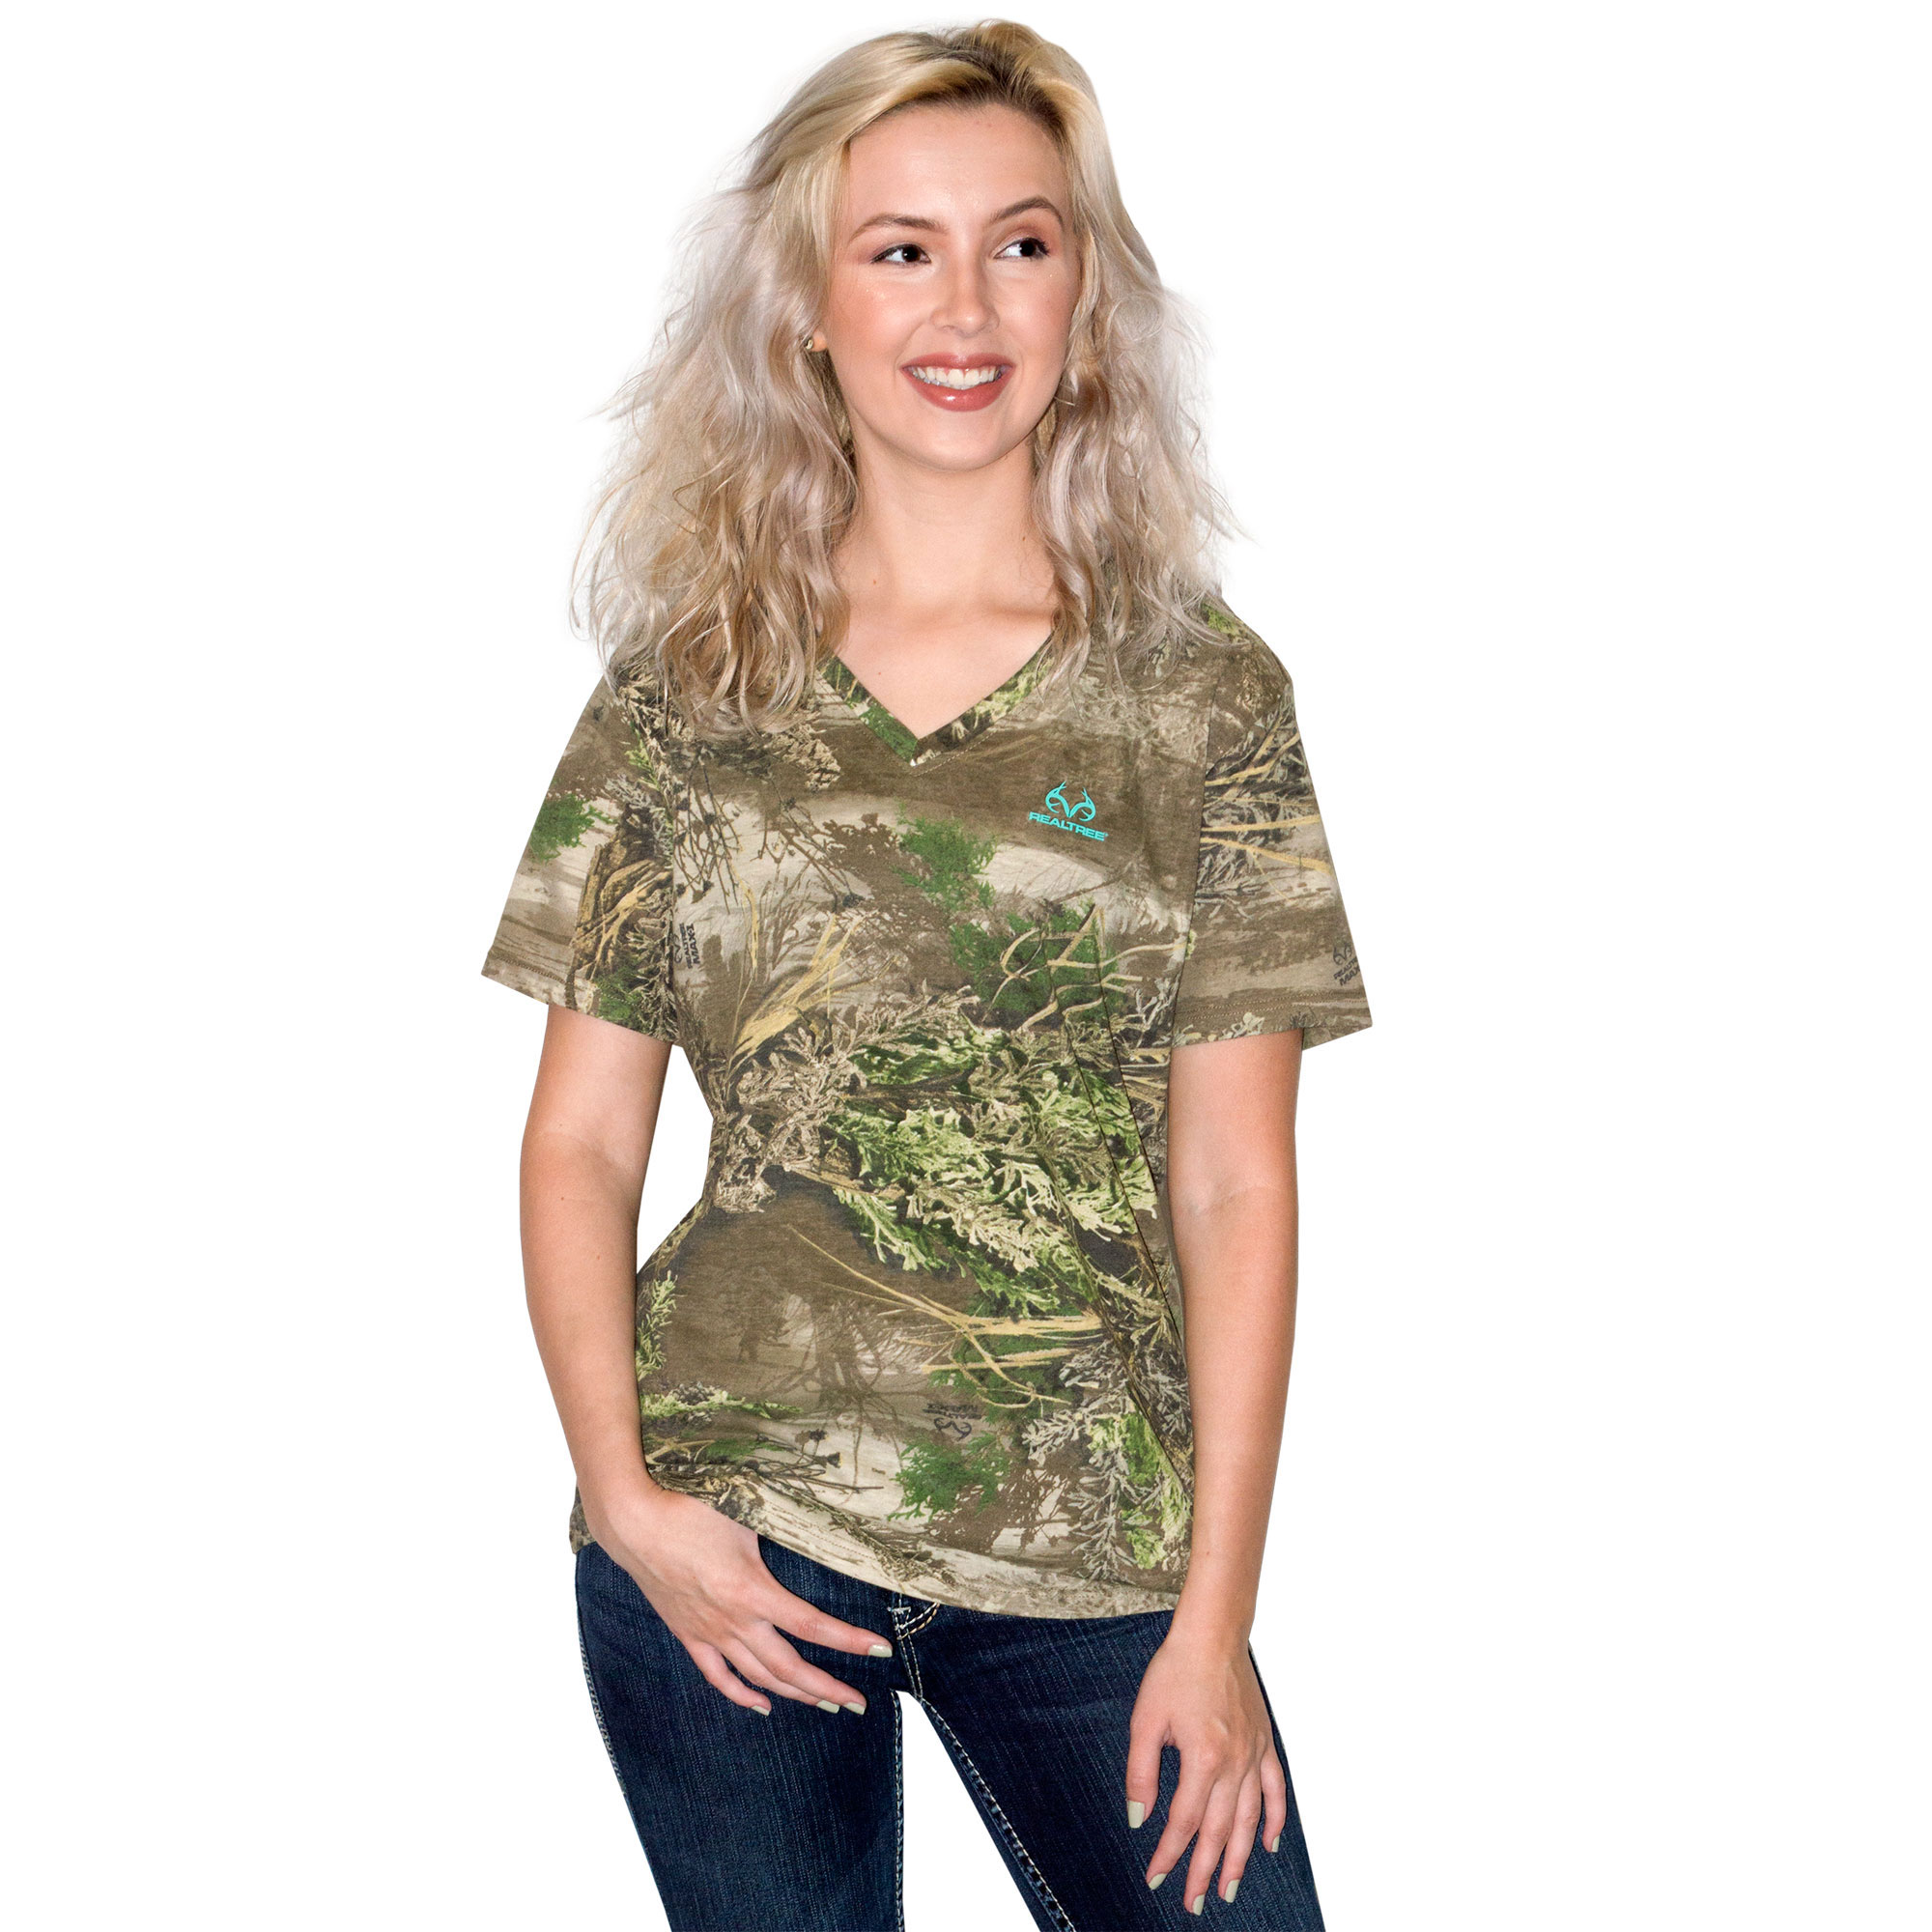 Ladies Short Sleeve Camo Shirt Realtree by Mahco Inc